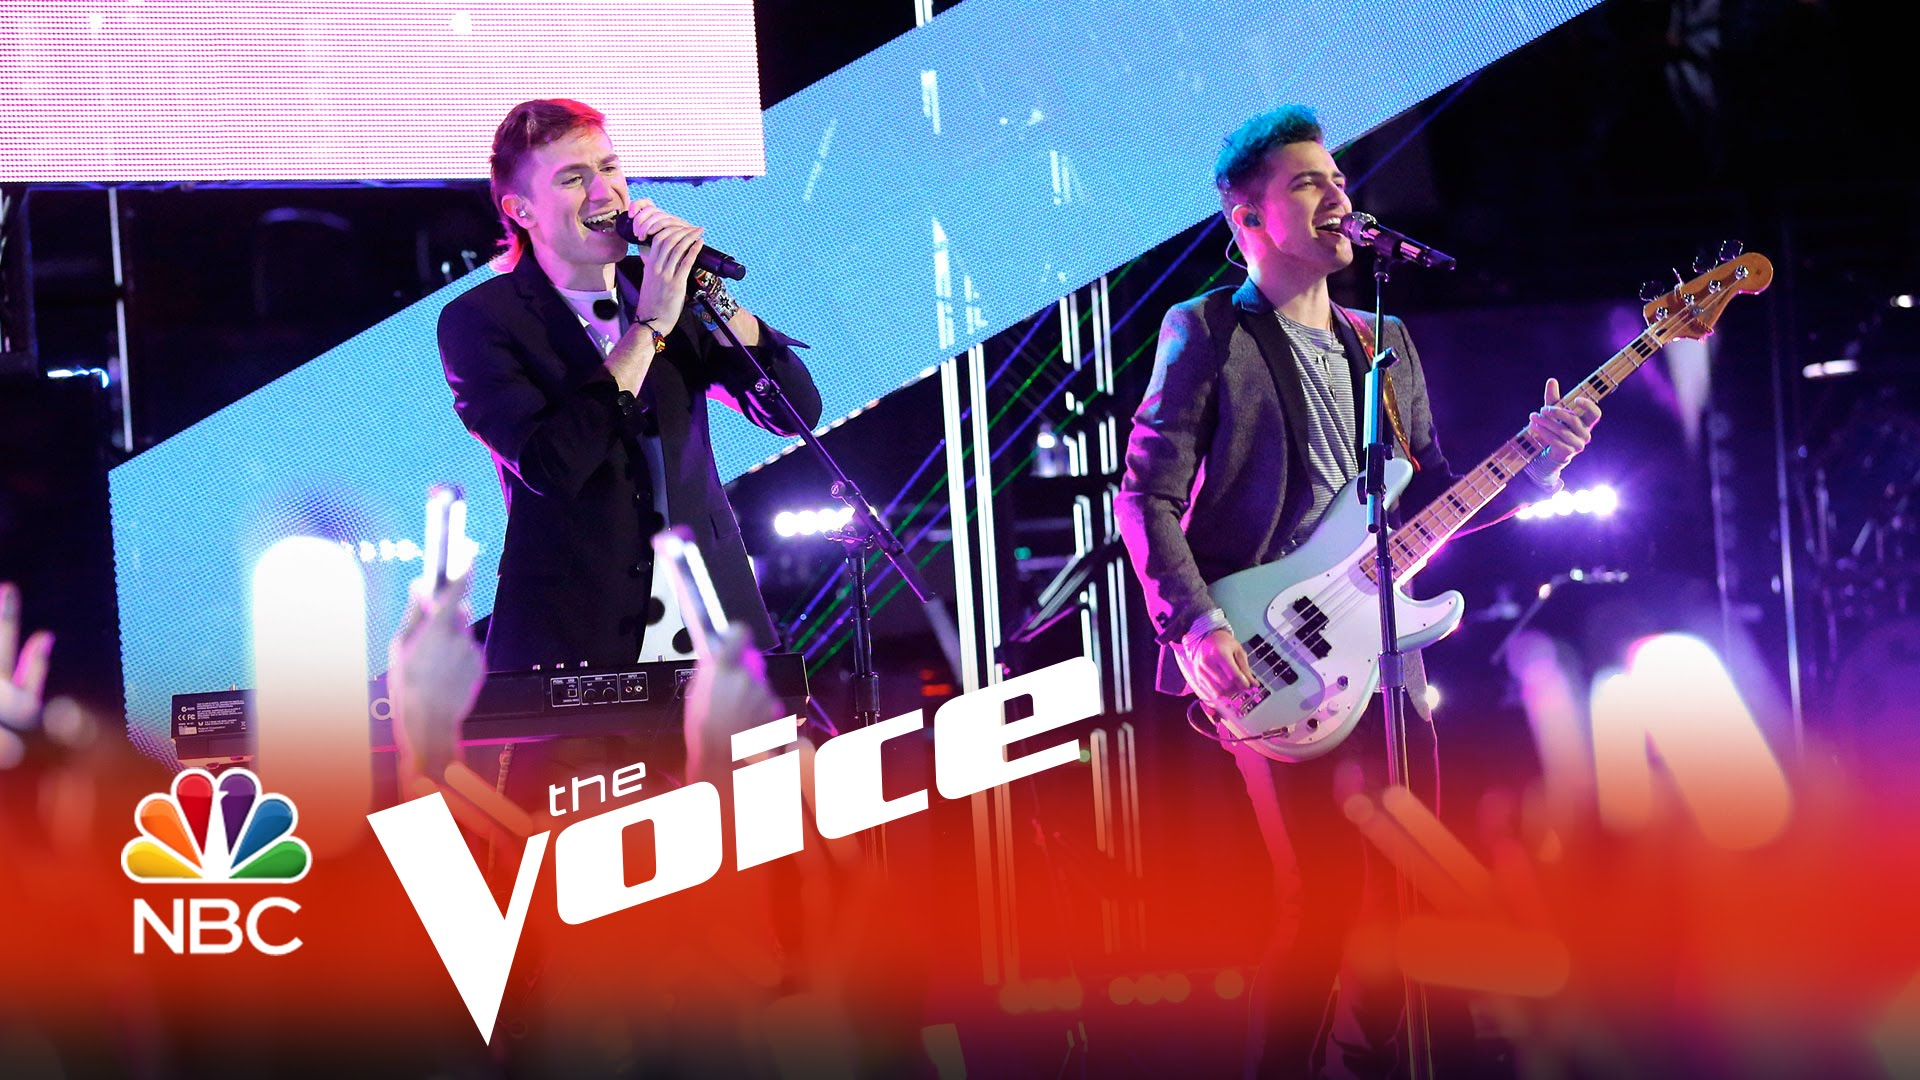 Walk The Moon perform 'Shut Up and Dance' on 'The Voice'